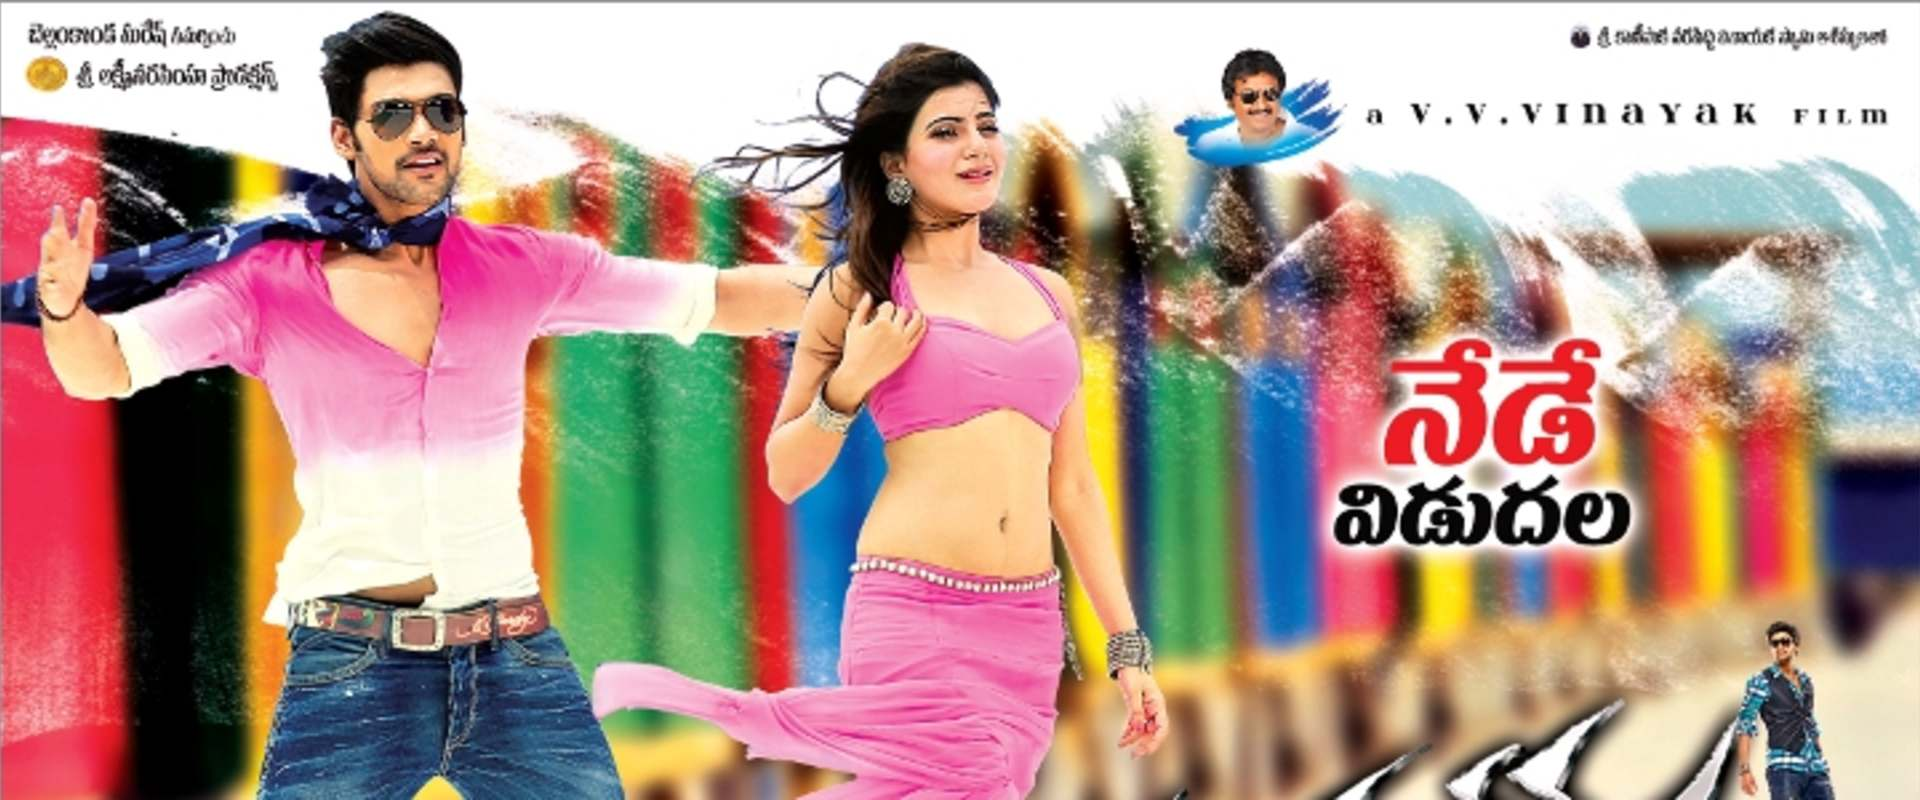 Alludu Seenu background 1